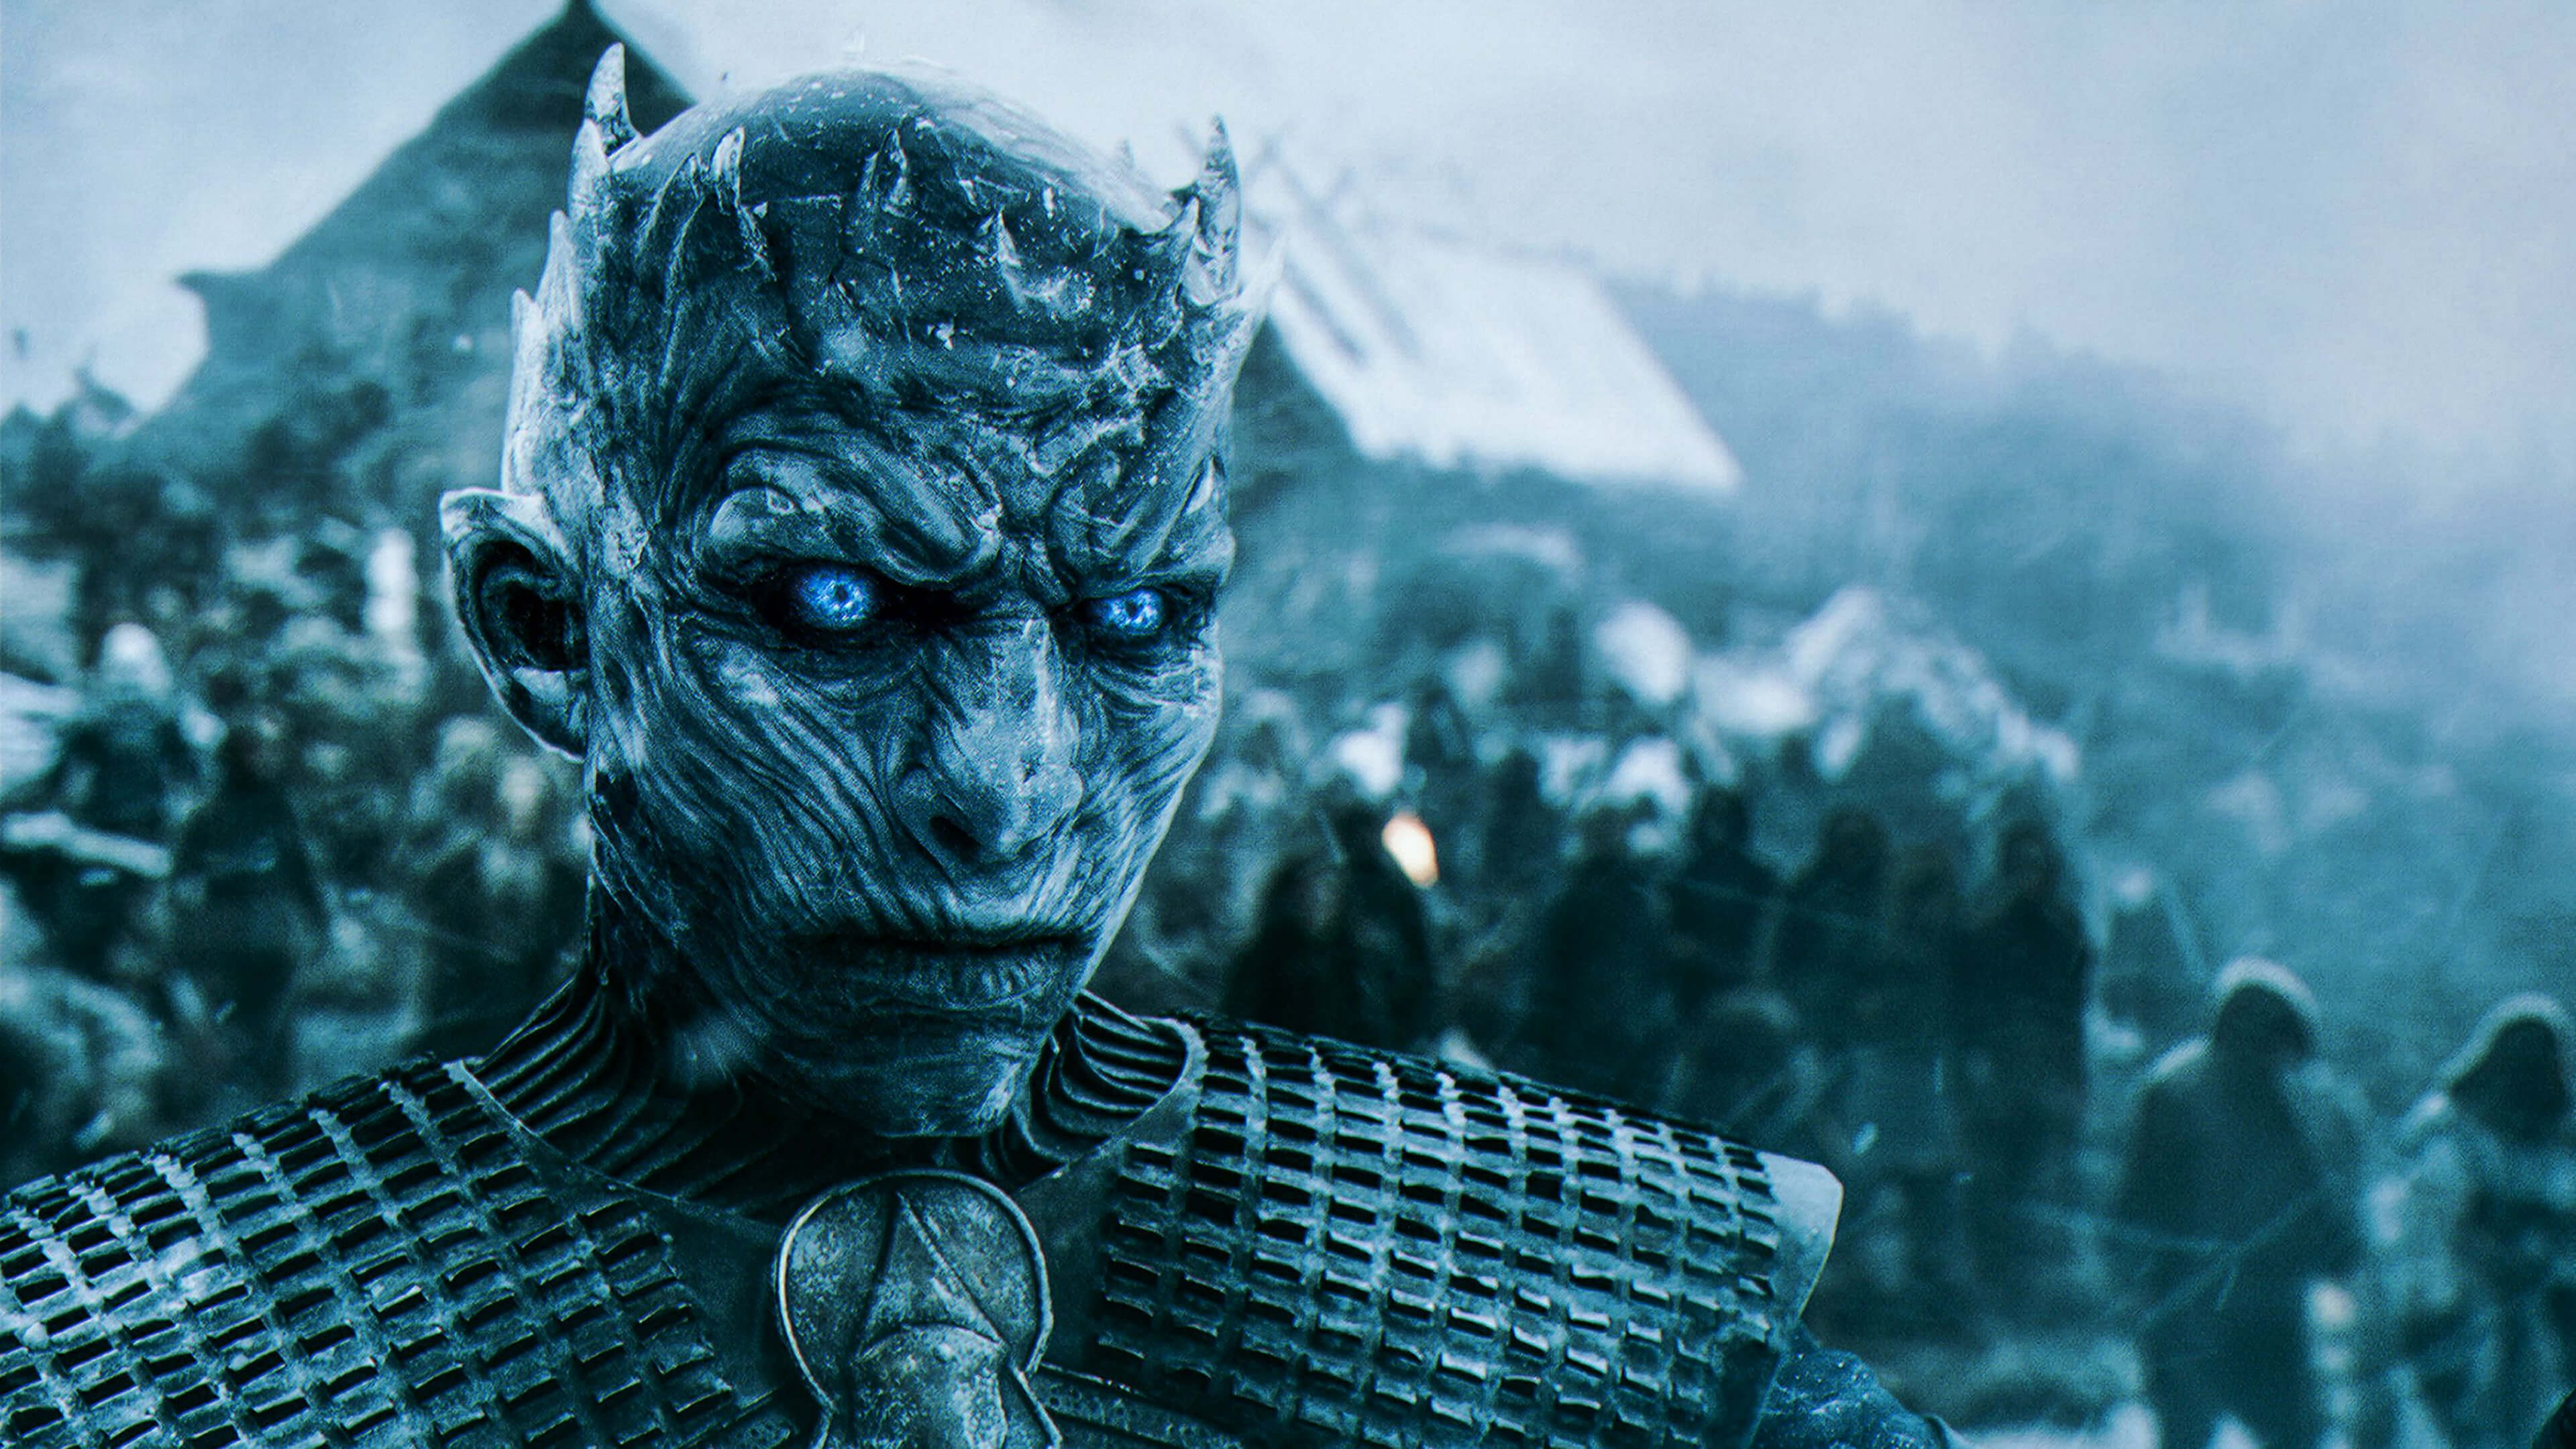 Game of Thrones Backgrounds 4K Download 3840x2160